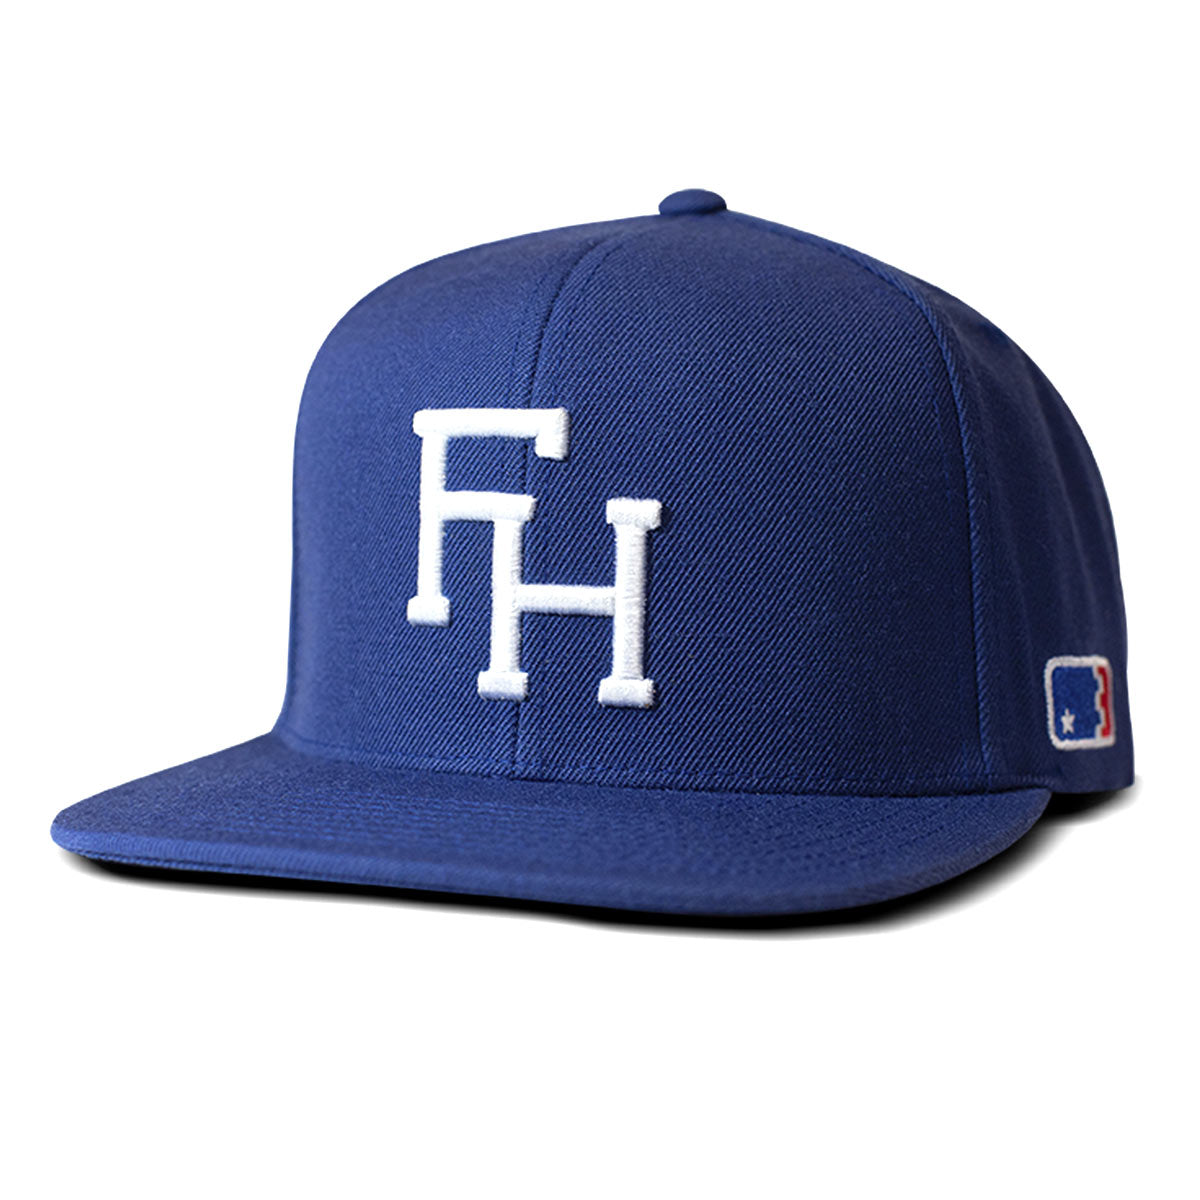 All Star Hat - Blue